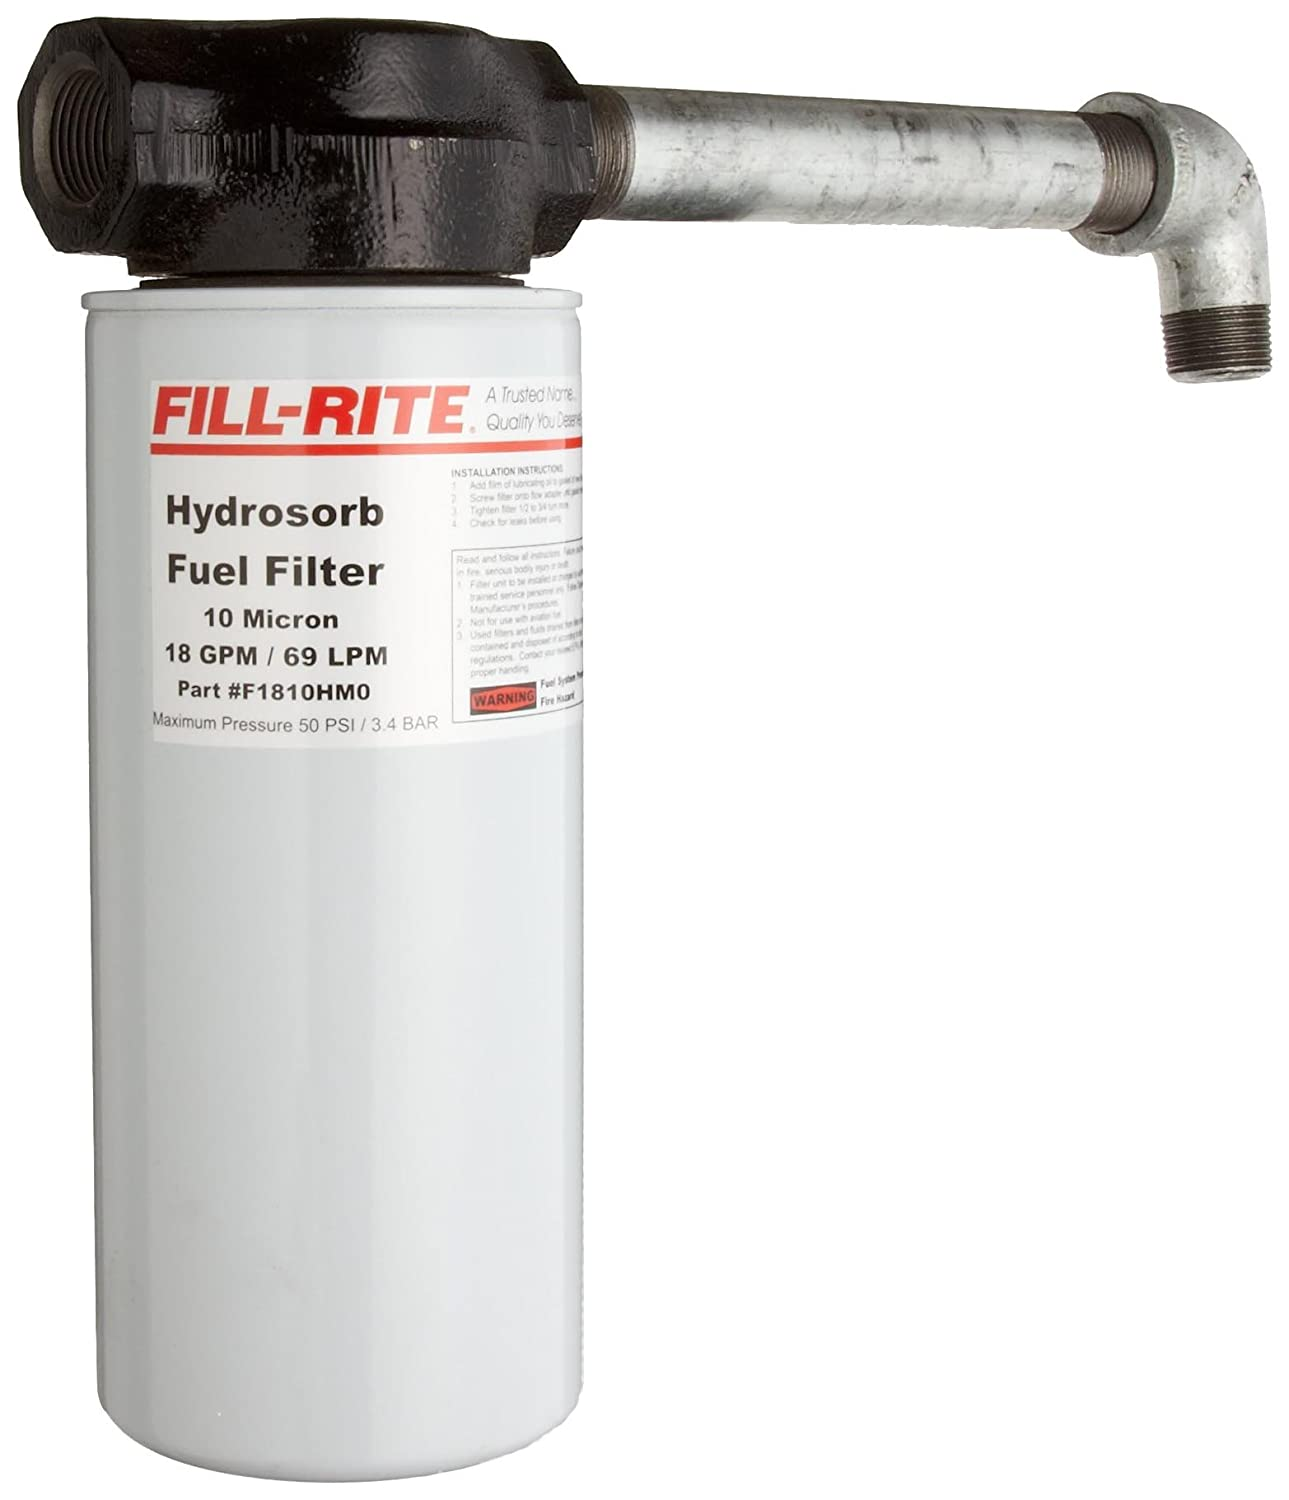 Amazon.com: Fill-Rite F4010PM0 10 Micron 40 GPM Particulate Spin on